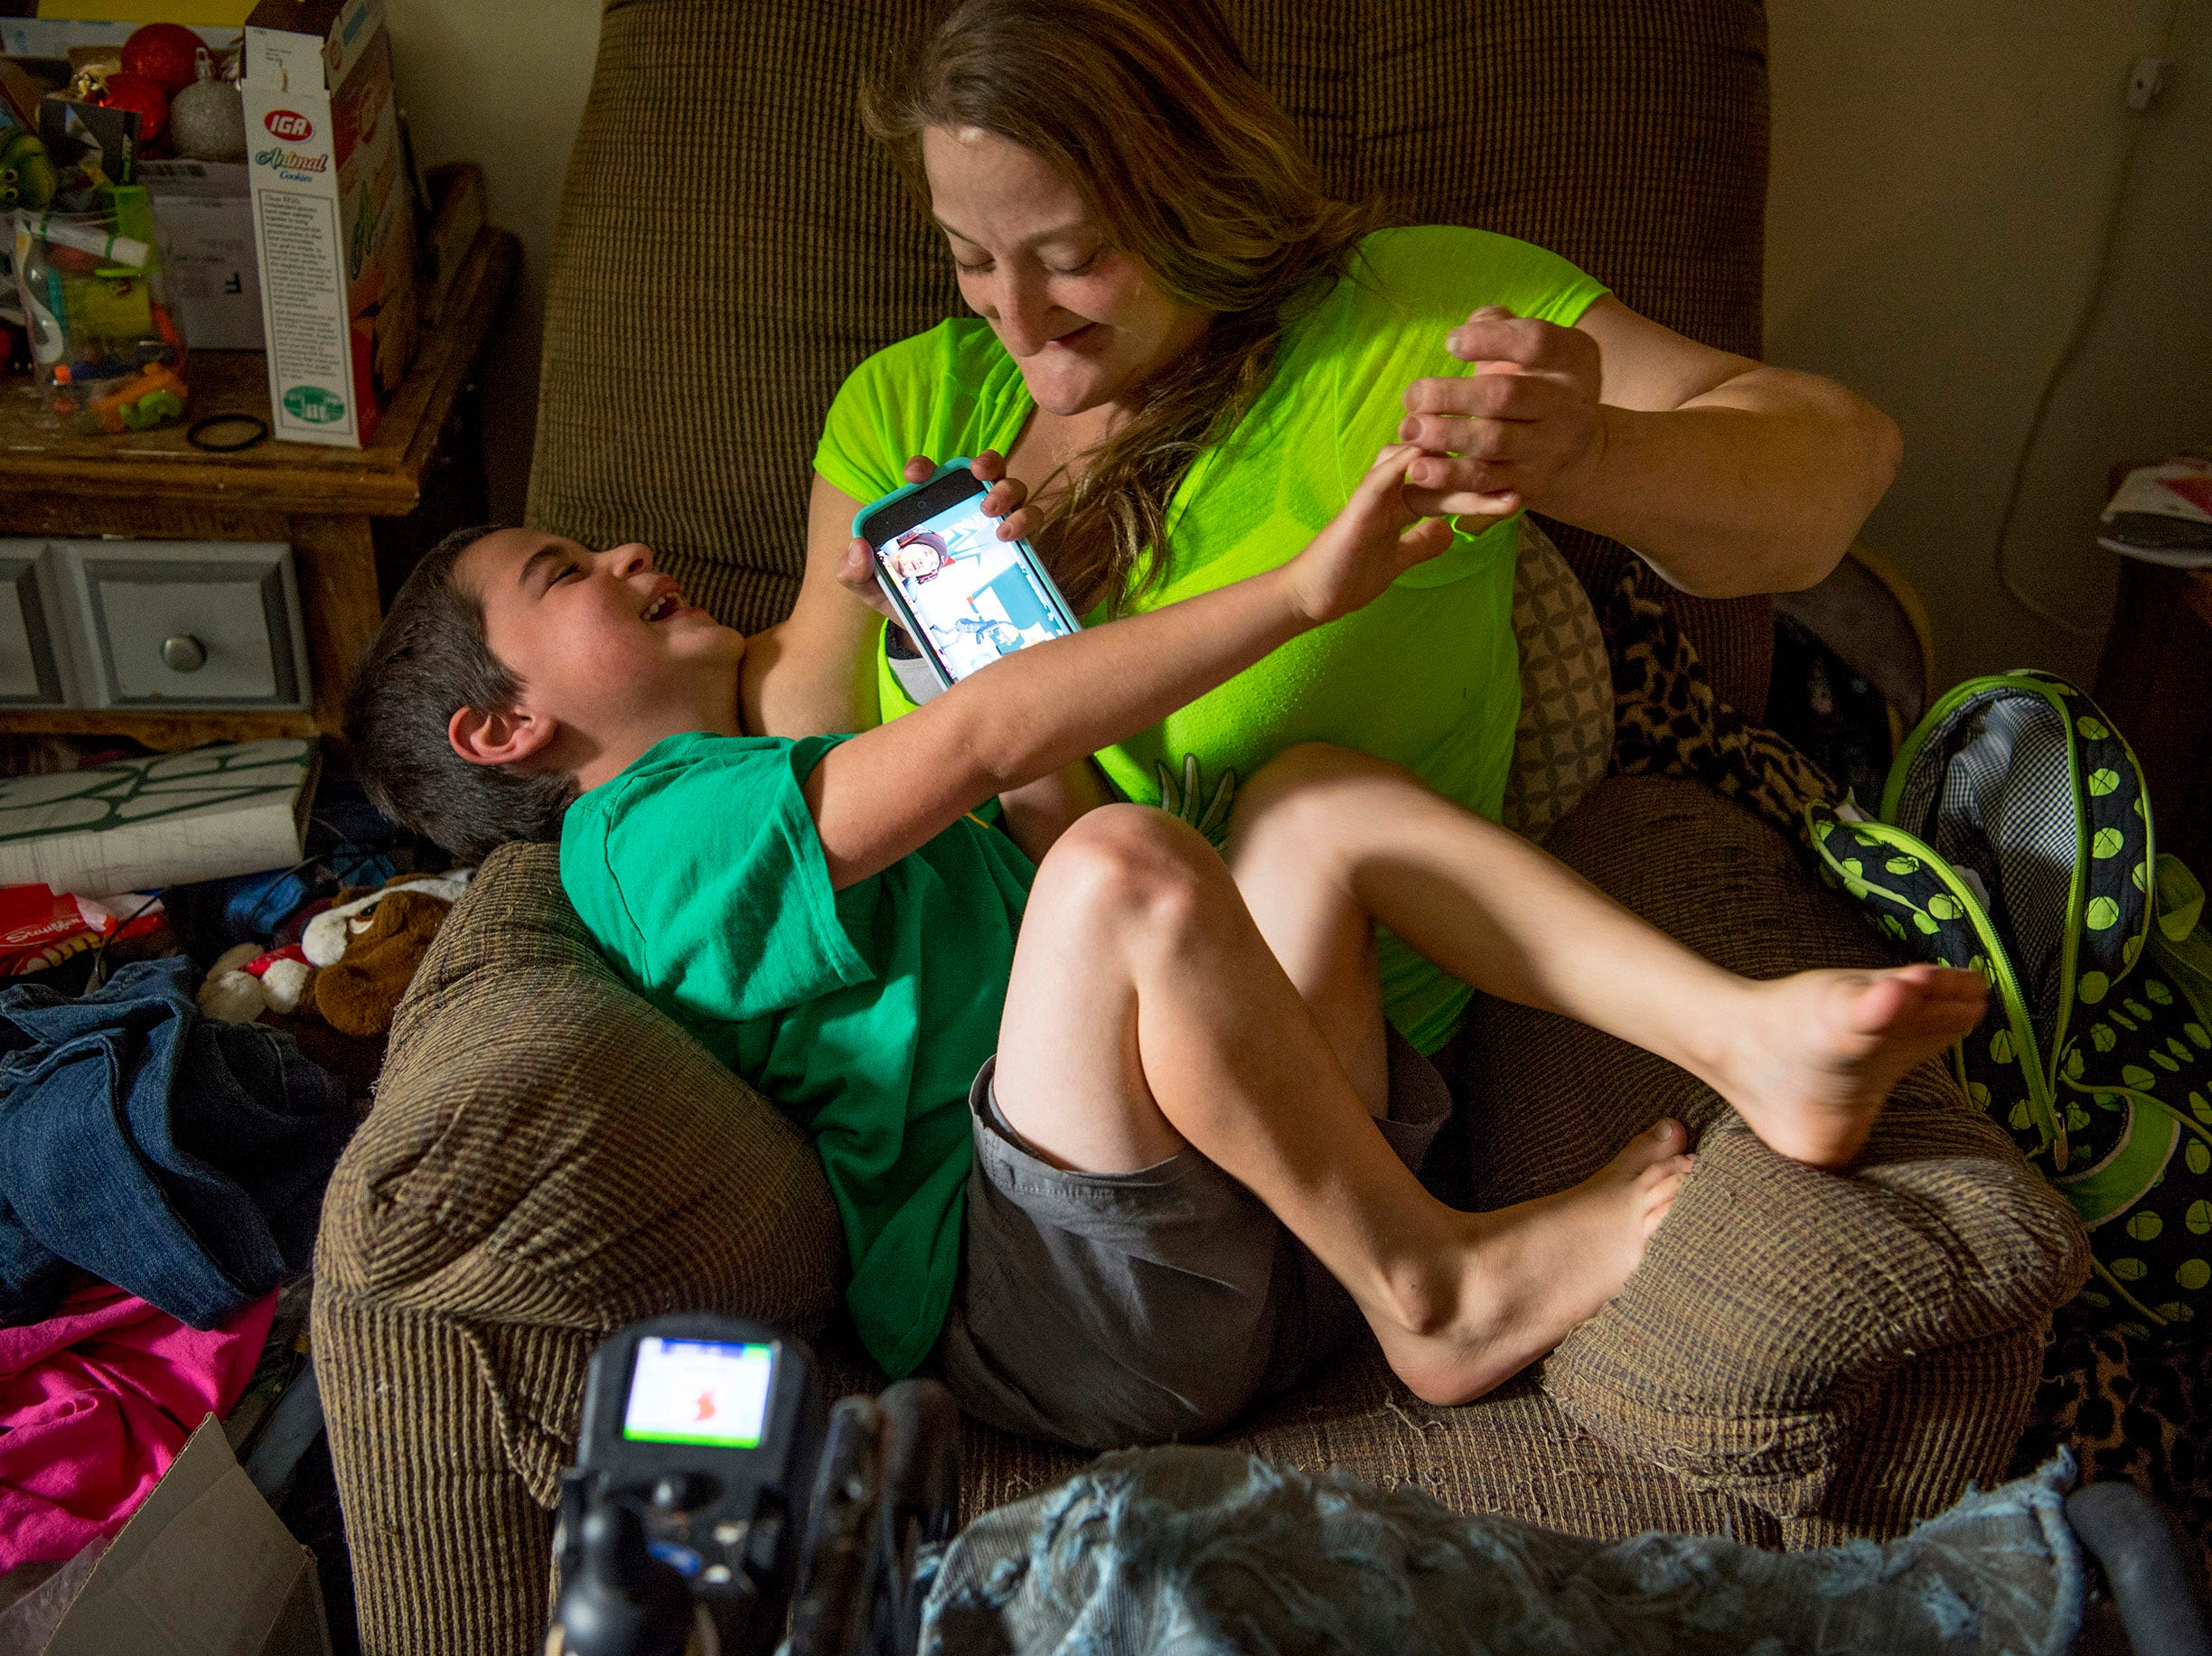 A tickle fight breaks out between Leland, 6, and his mother Amanda Smith as he tries to watch videos on her cell phone. This photo was included in a story published Wednesday, Nov. 21, about Amanda raising two children while dealing with a rare disease called Congenital Insensitivity to Pain with Anhidrosis.